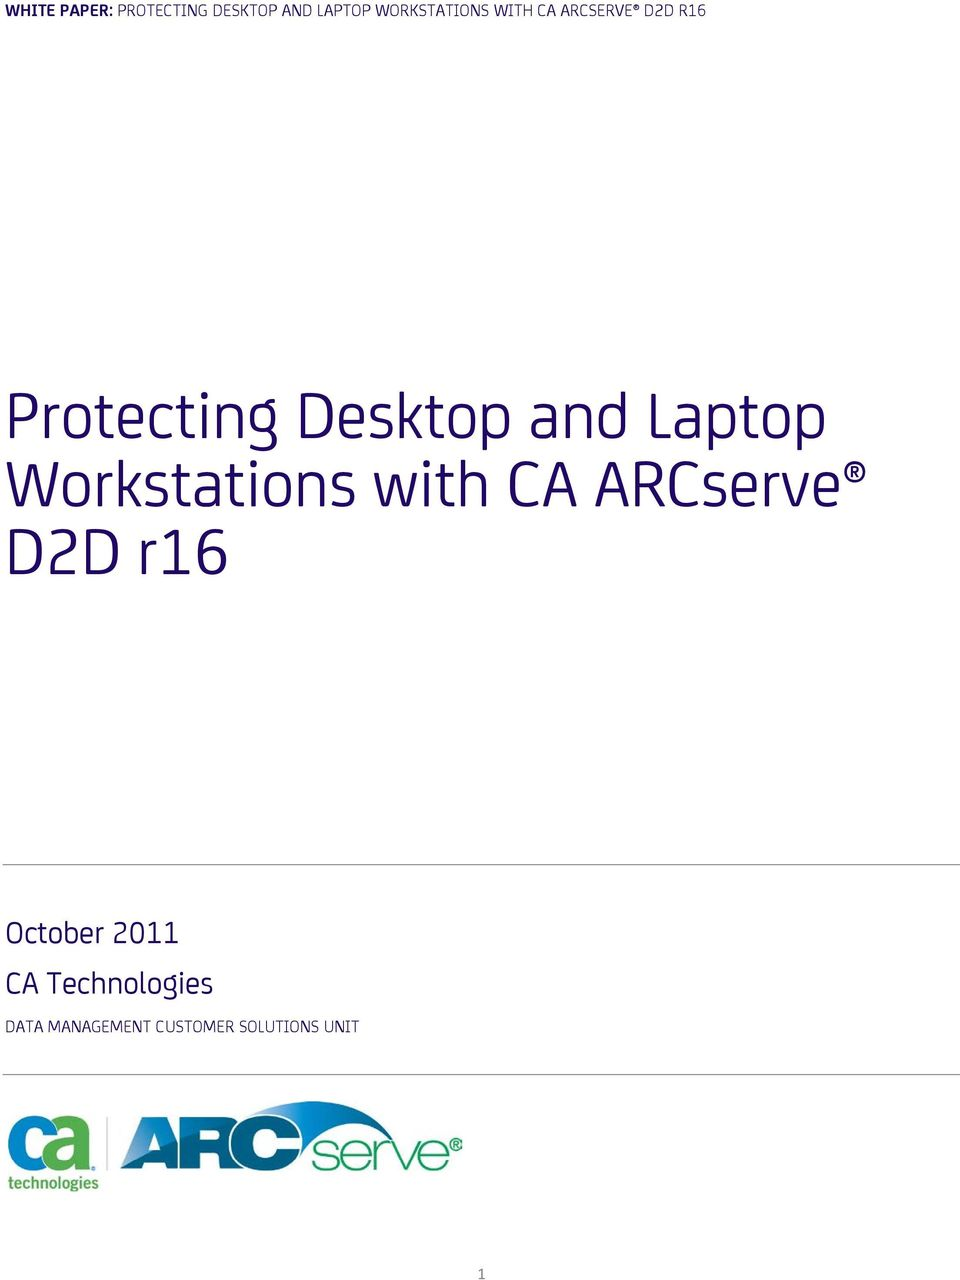 Desktop and Laptop Workstations with CA ARCserve D2D